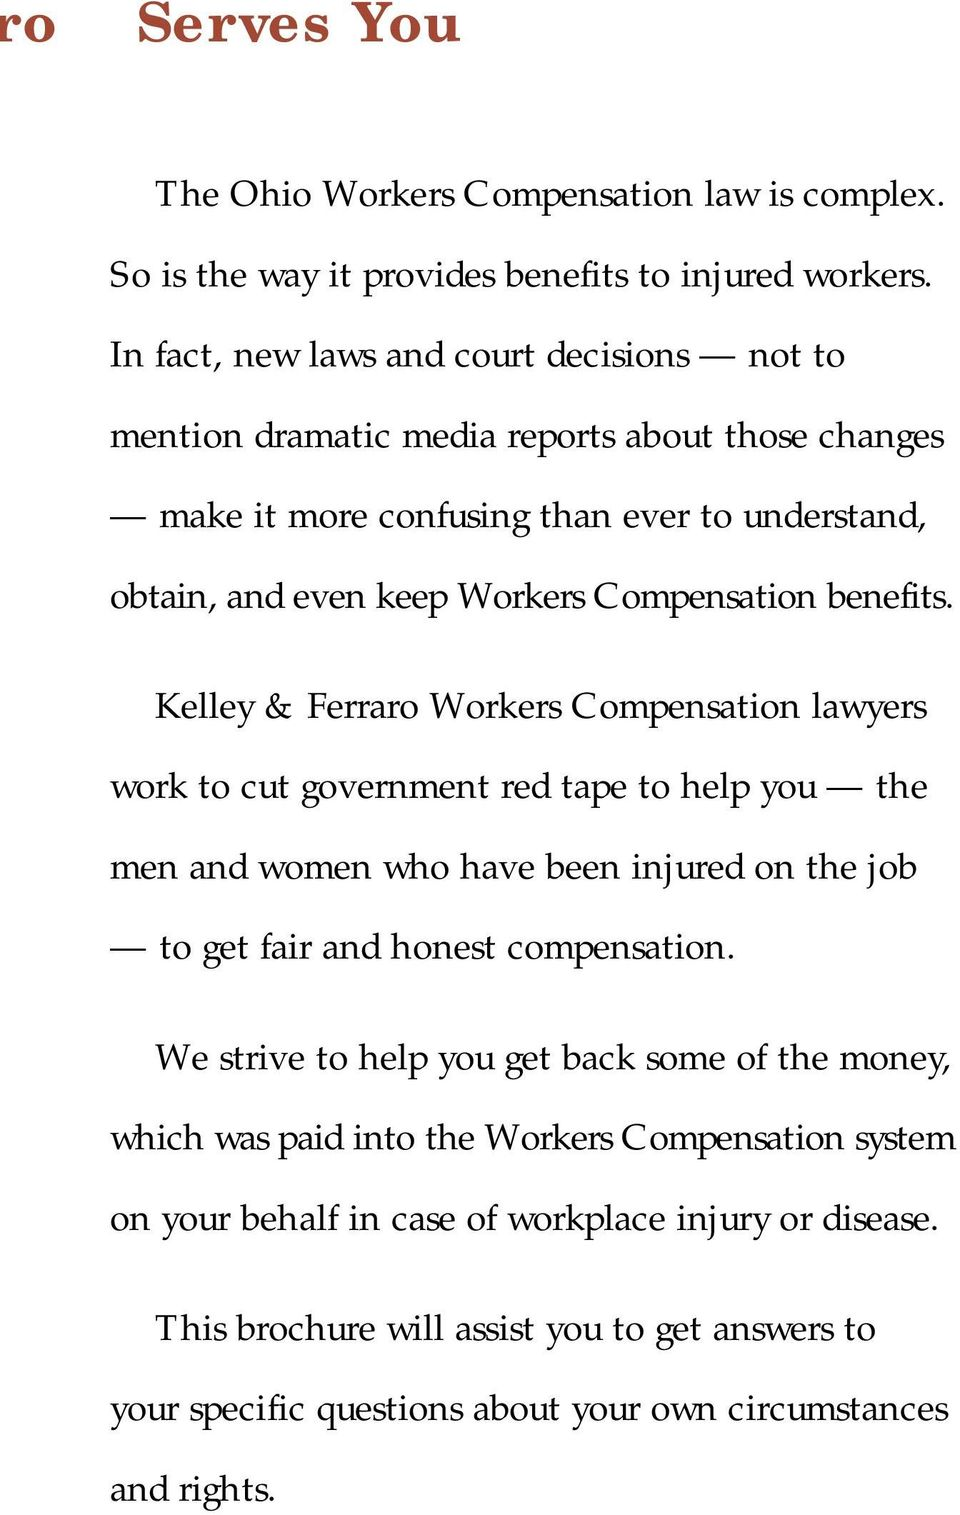 benefits. Kelley & Ferraro Workers Compensation lawyers work to cut government red tape to help you the men and women who have been injured on the job to get fair and honest compensation.